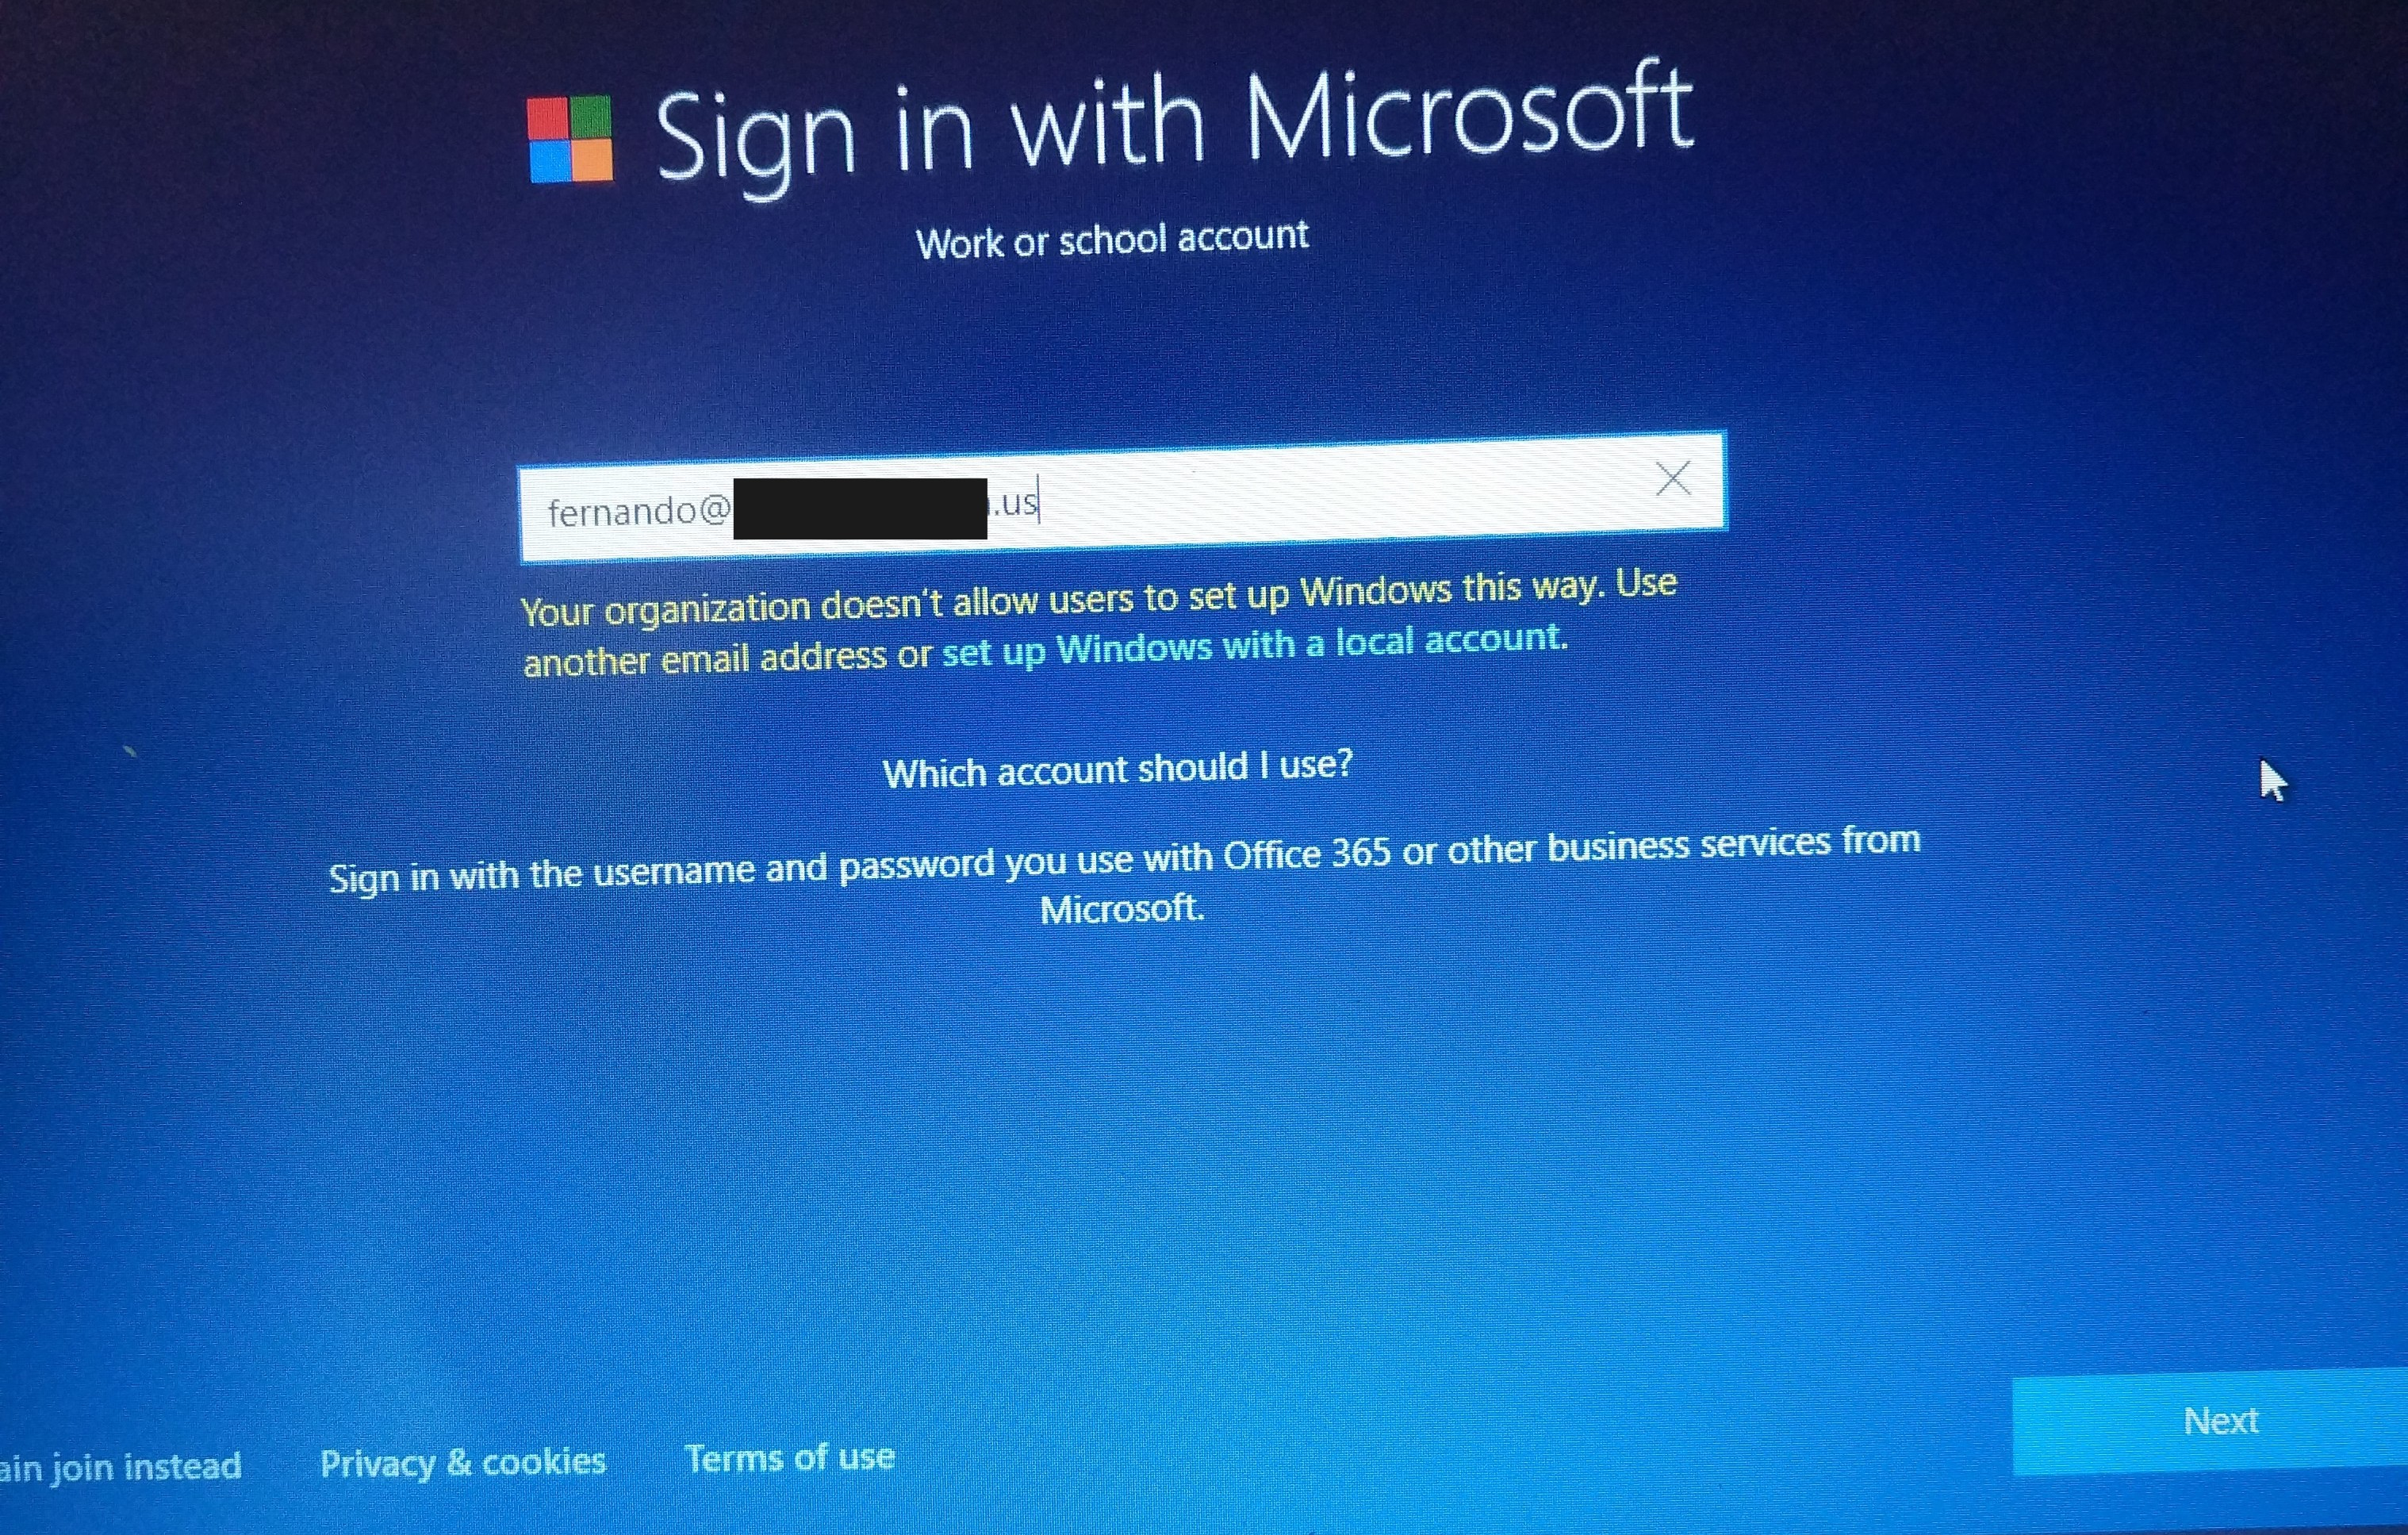 Windows 10 LTSC: better for production & sanity than Home or Pro 17